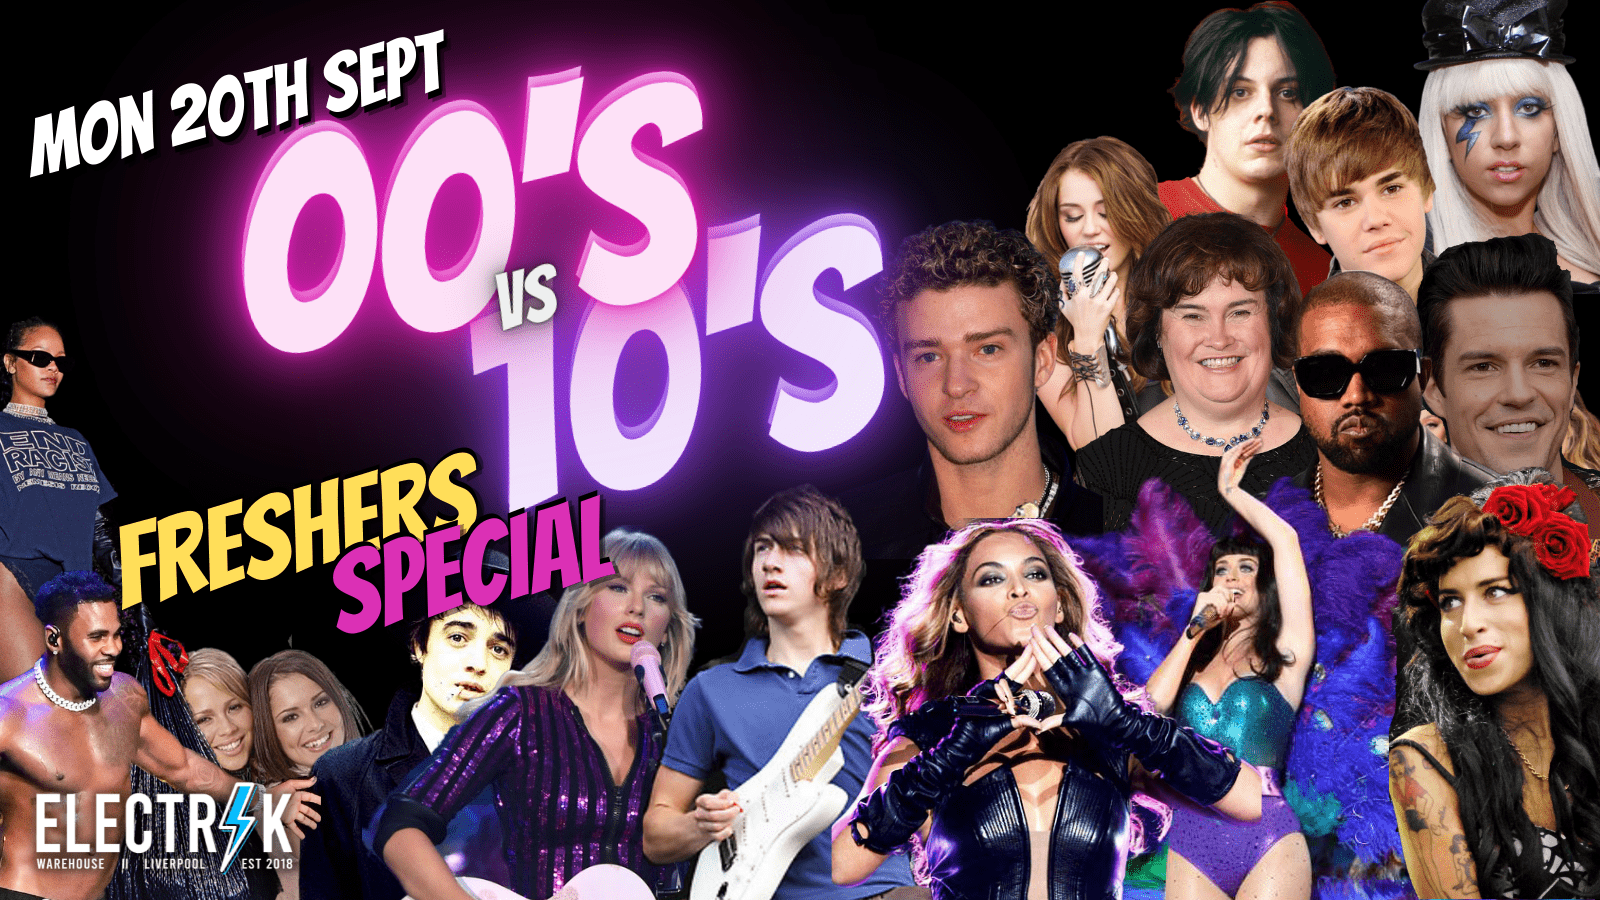 00s VS 10s – Freshers Special